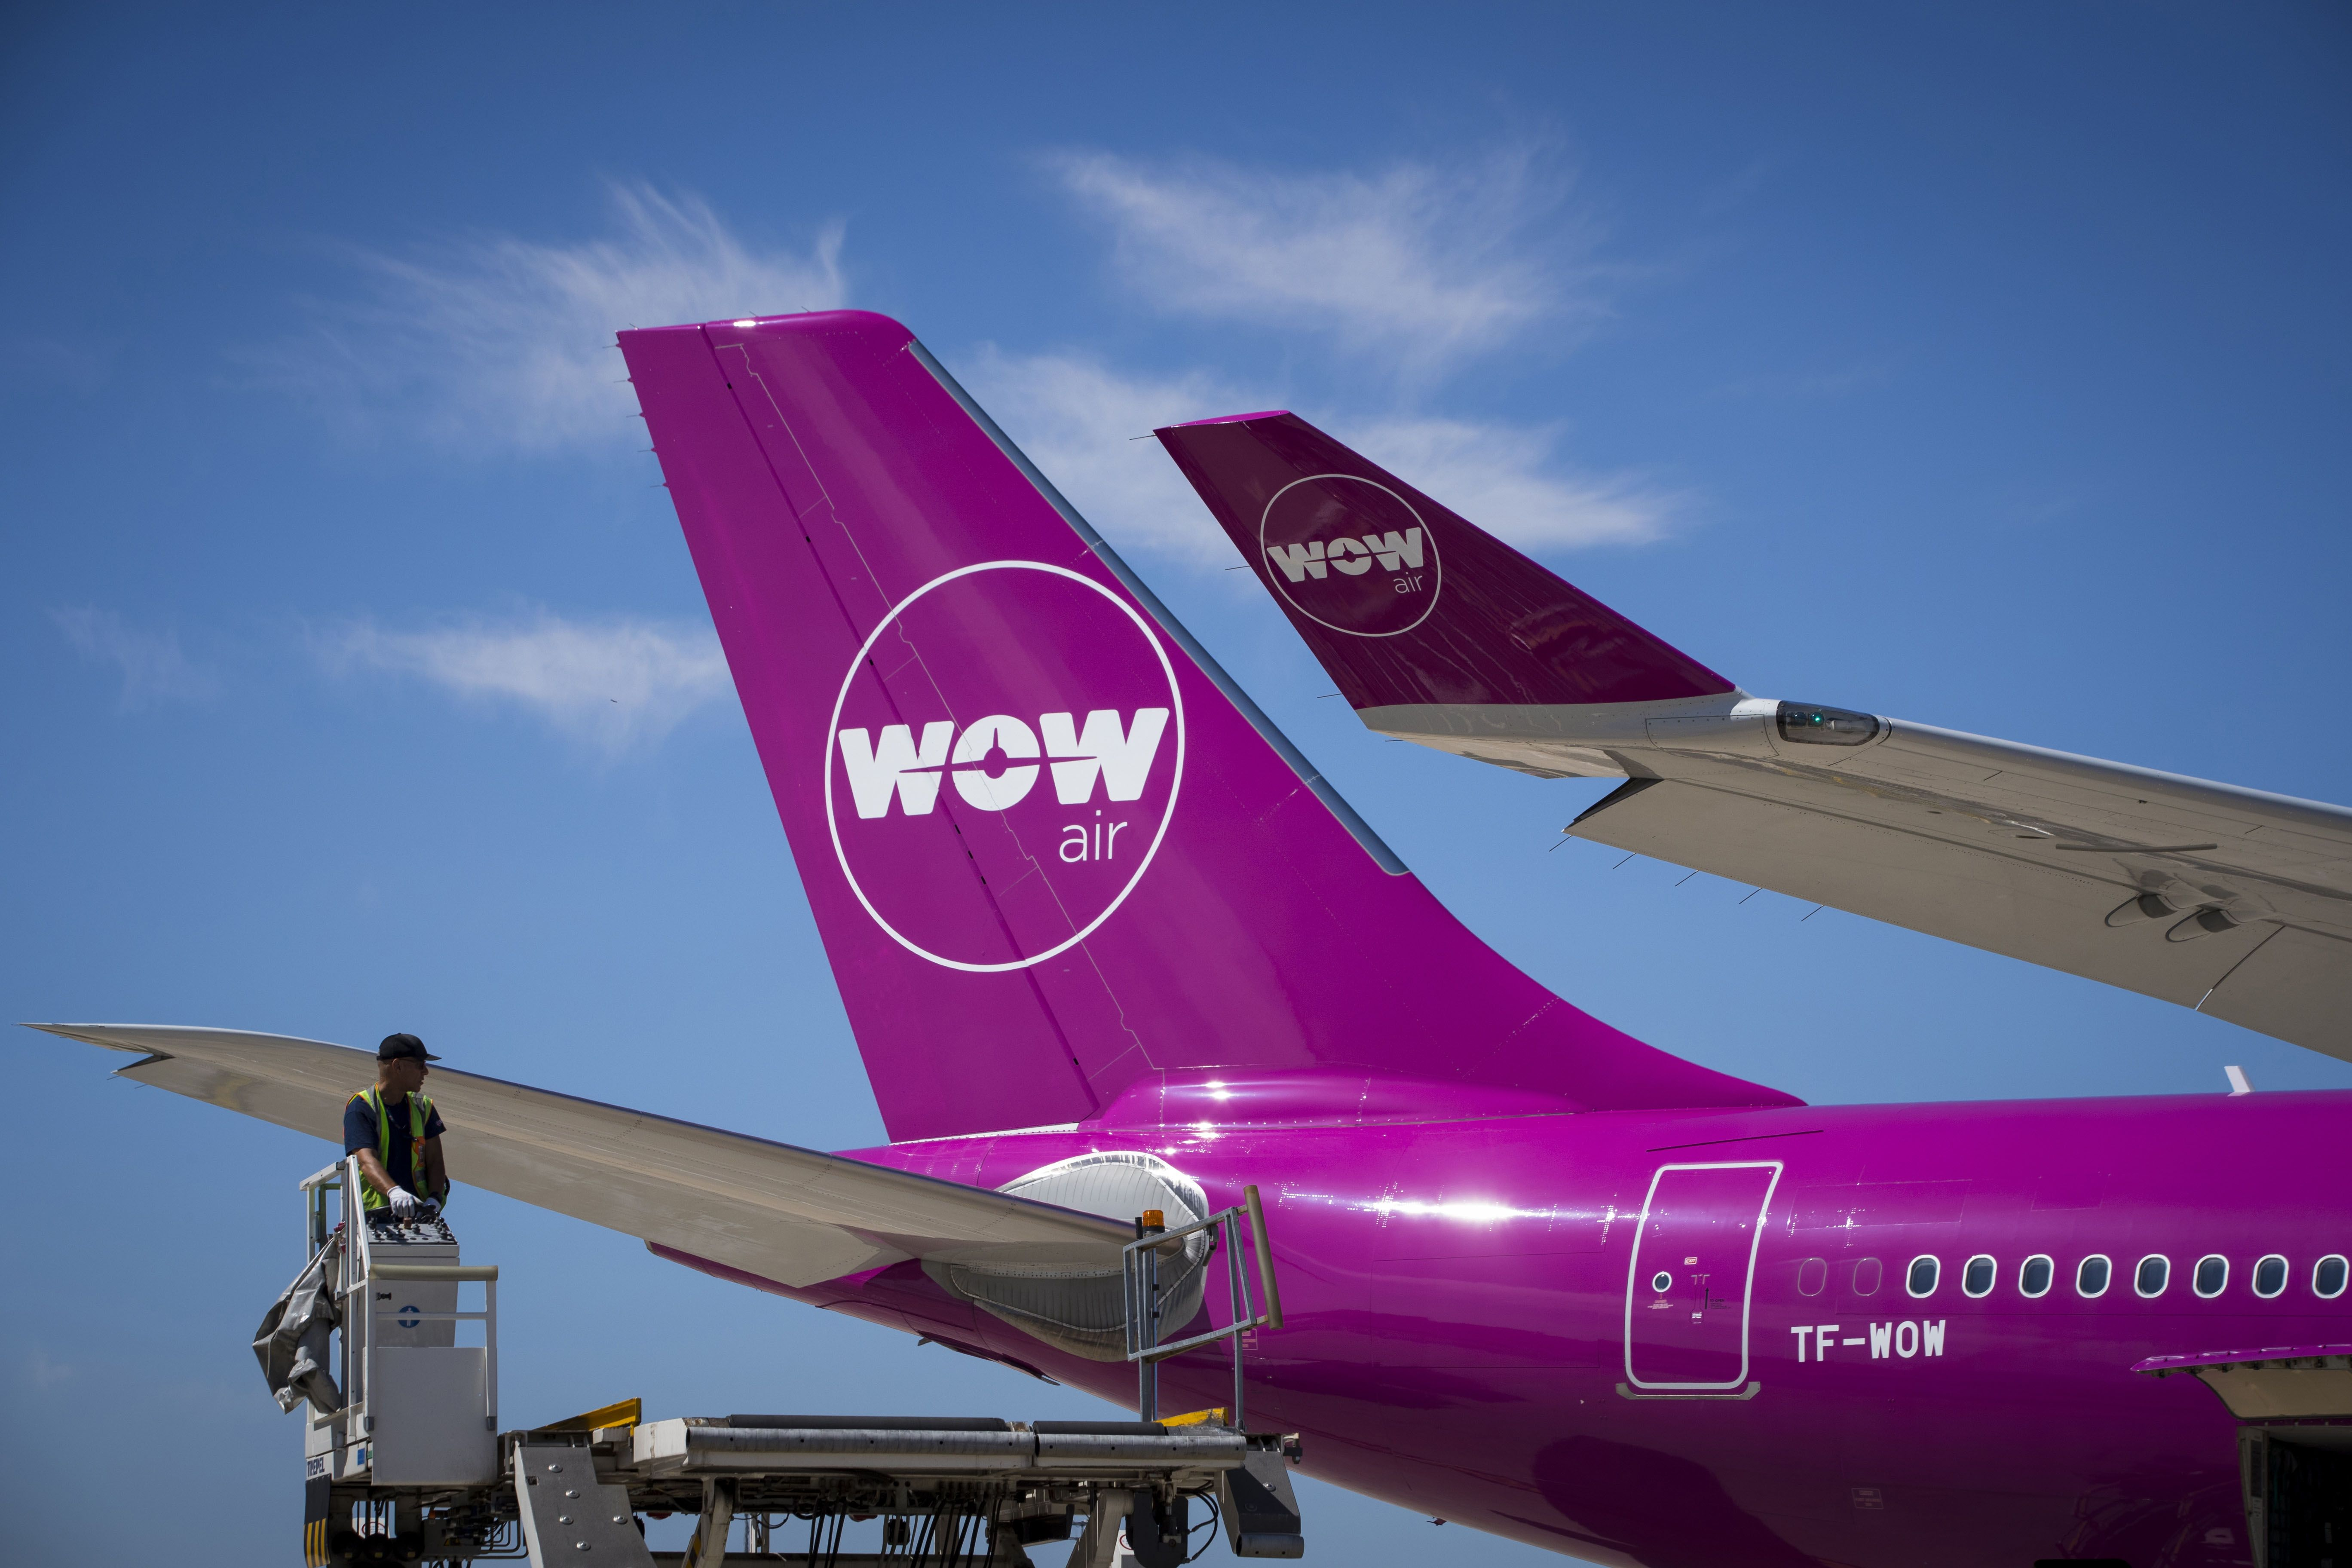 Discount Airline 'Wow' Shuts Down Out of Nowhere, Stranding Thousands of Passengers